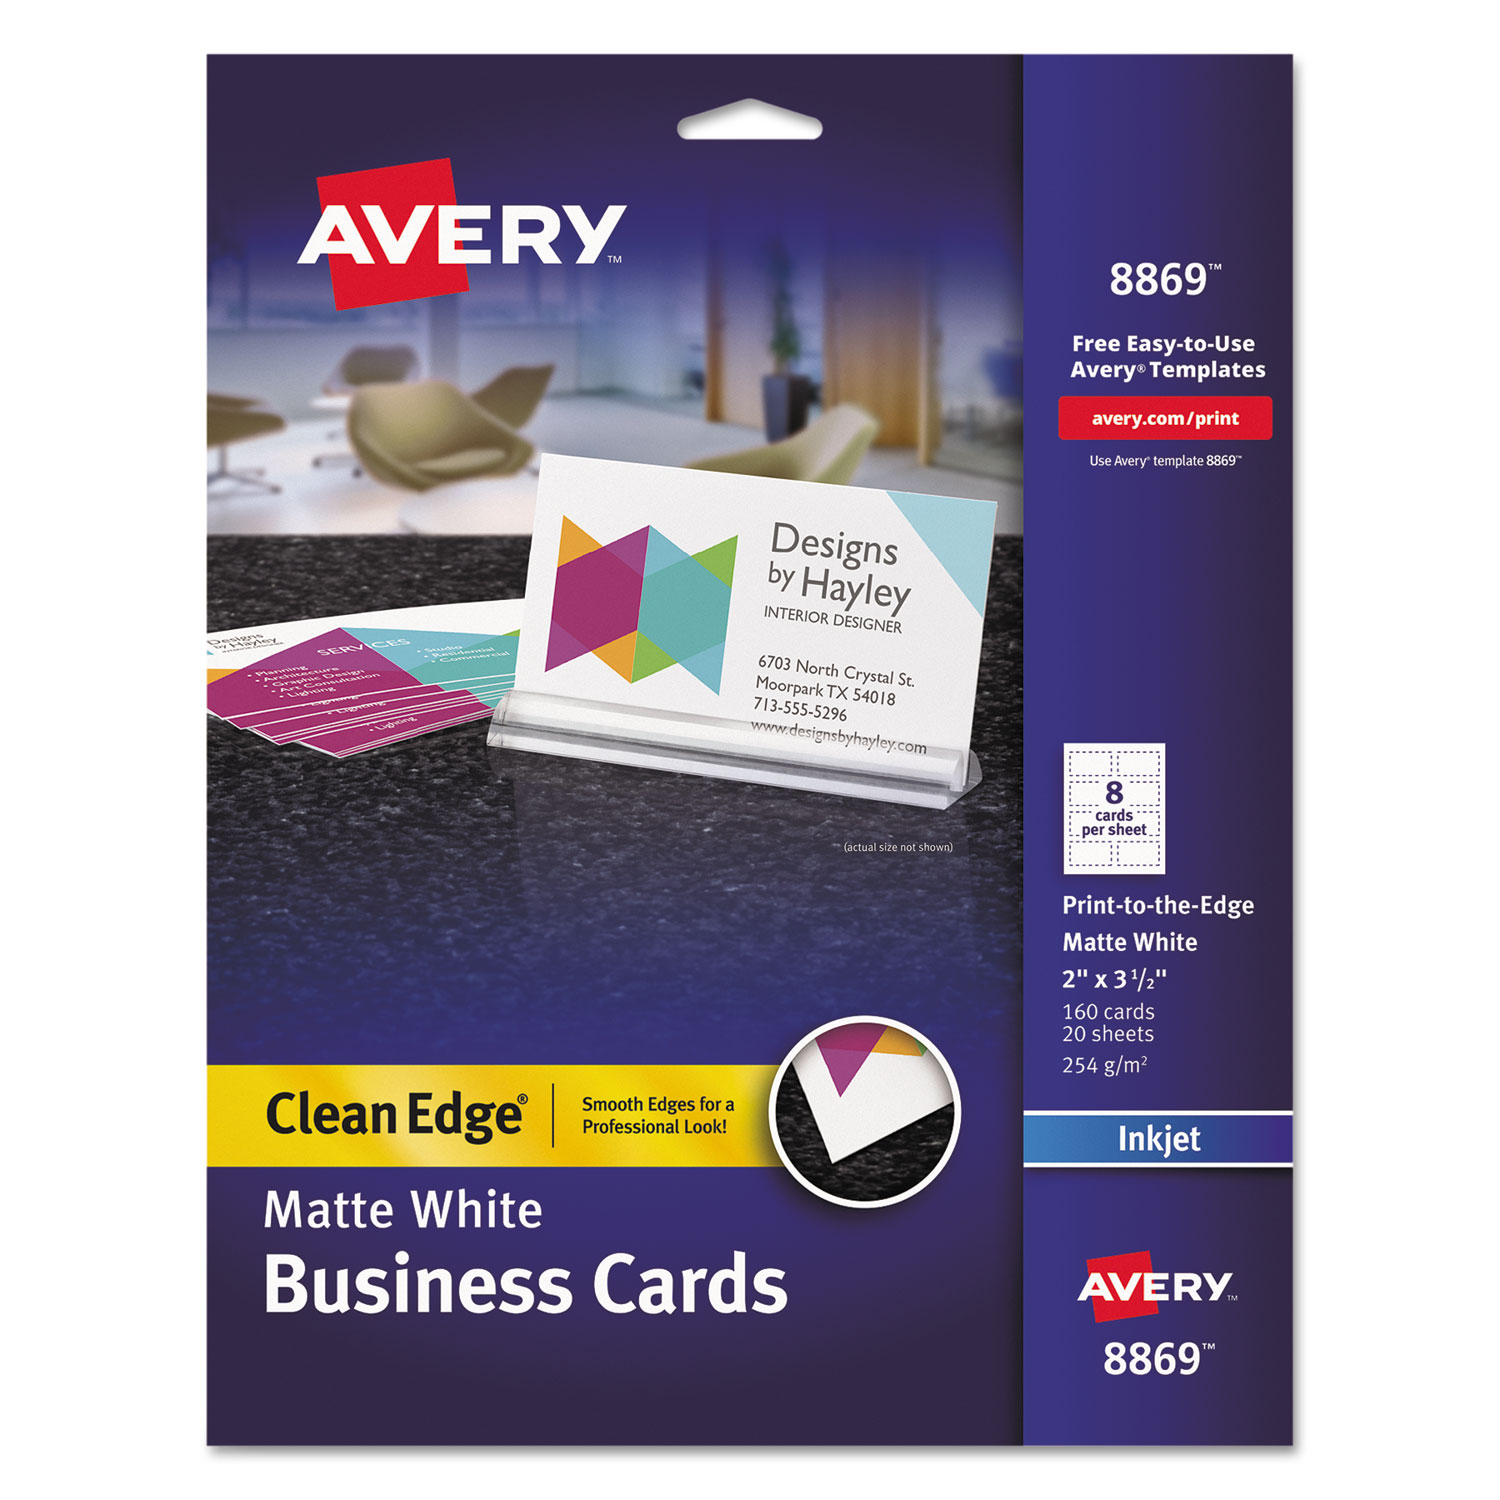 Print to the edge true print business cards by avery ave8869 ave8869 thumbnail 1 reheart Image collections